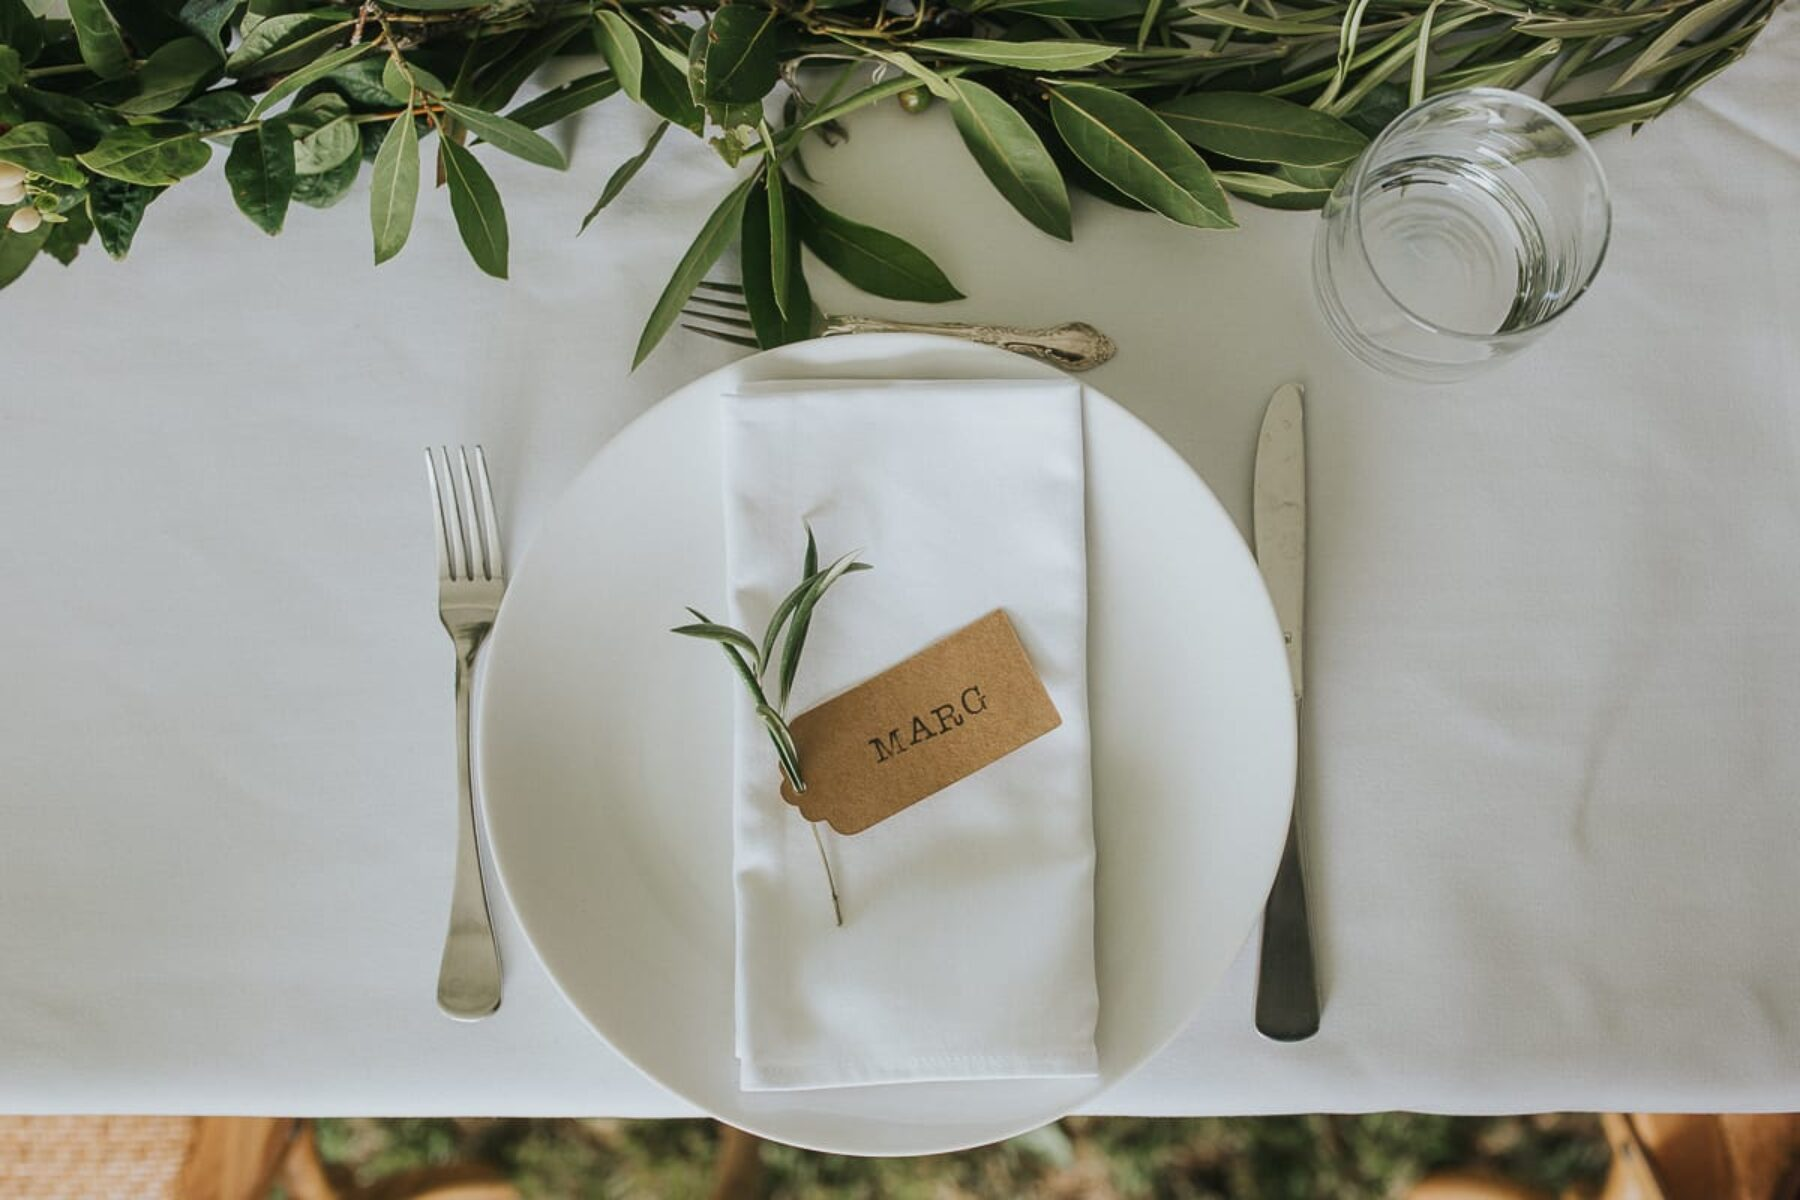 rustic table setting with olive leaf runner